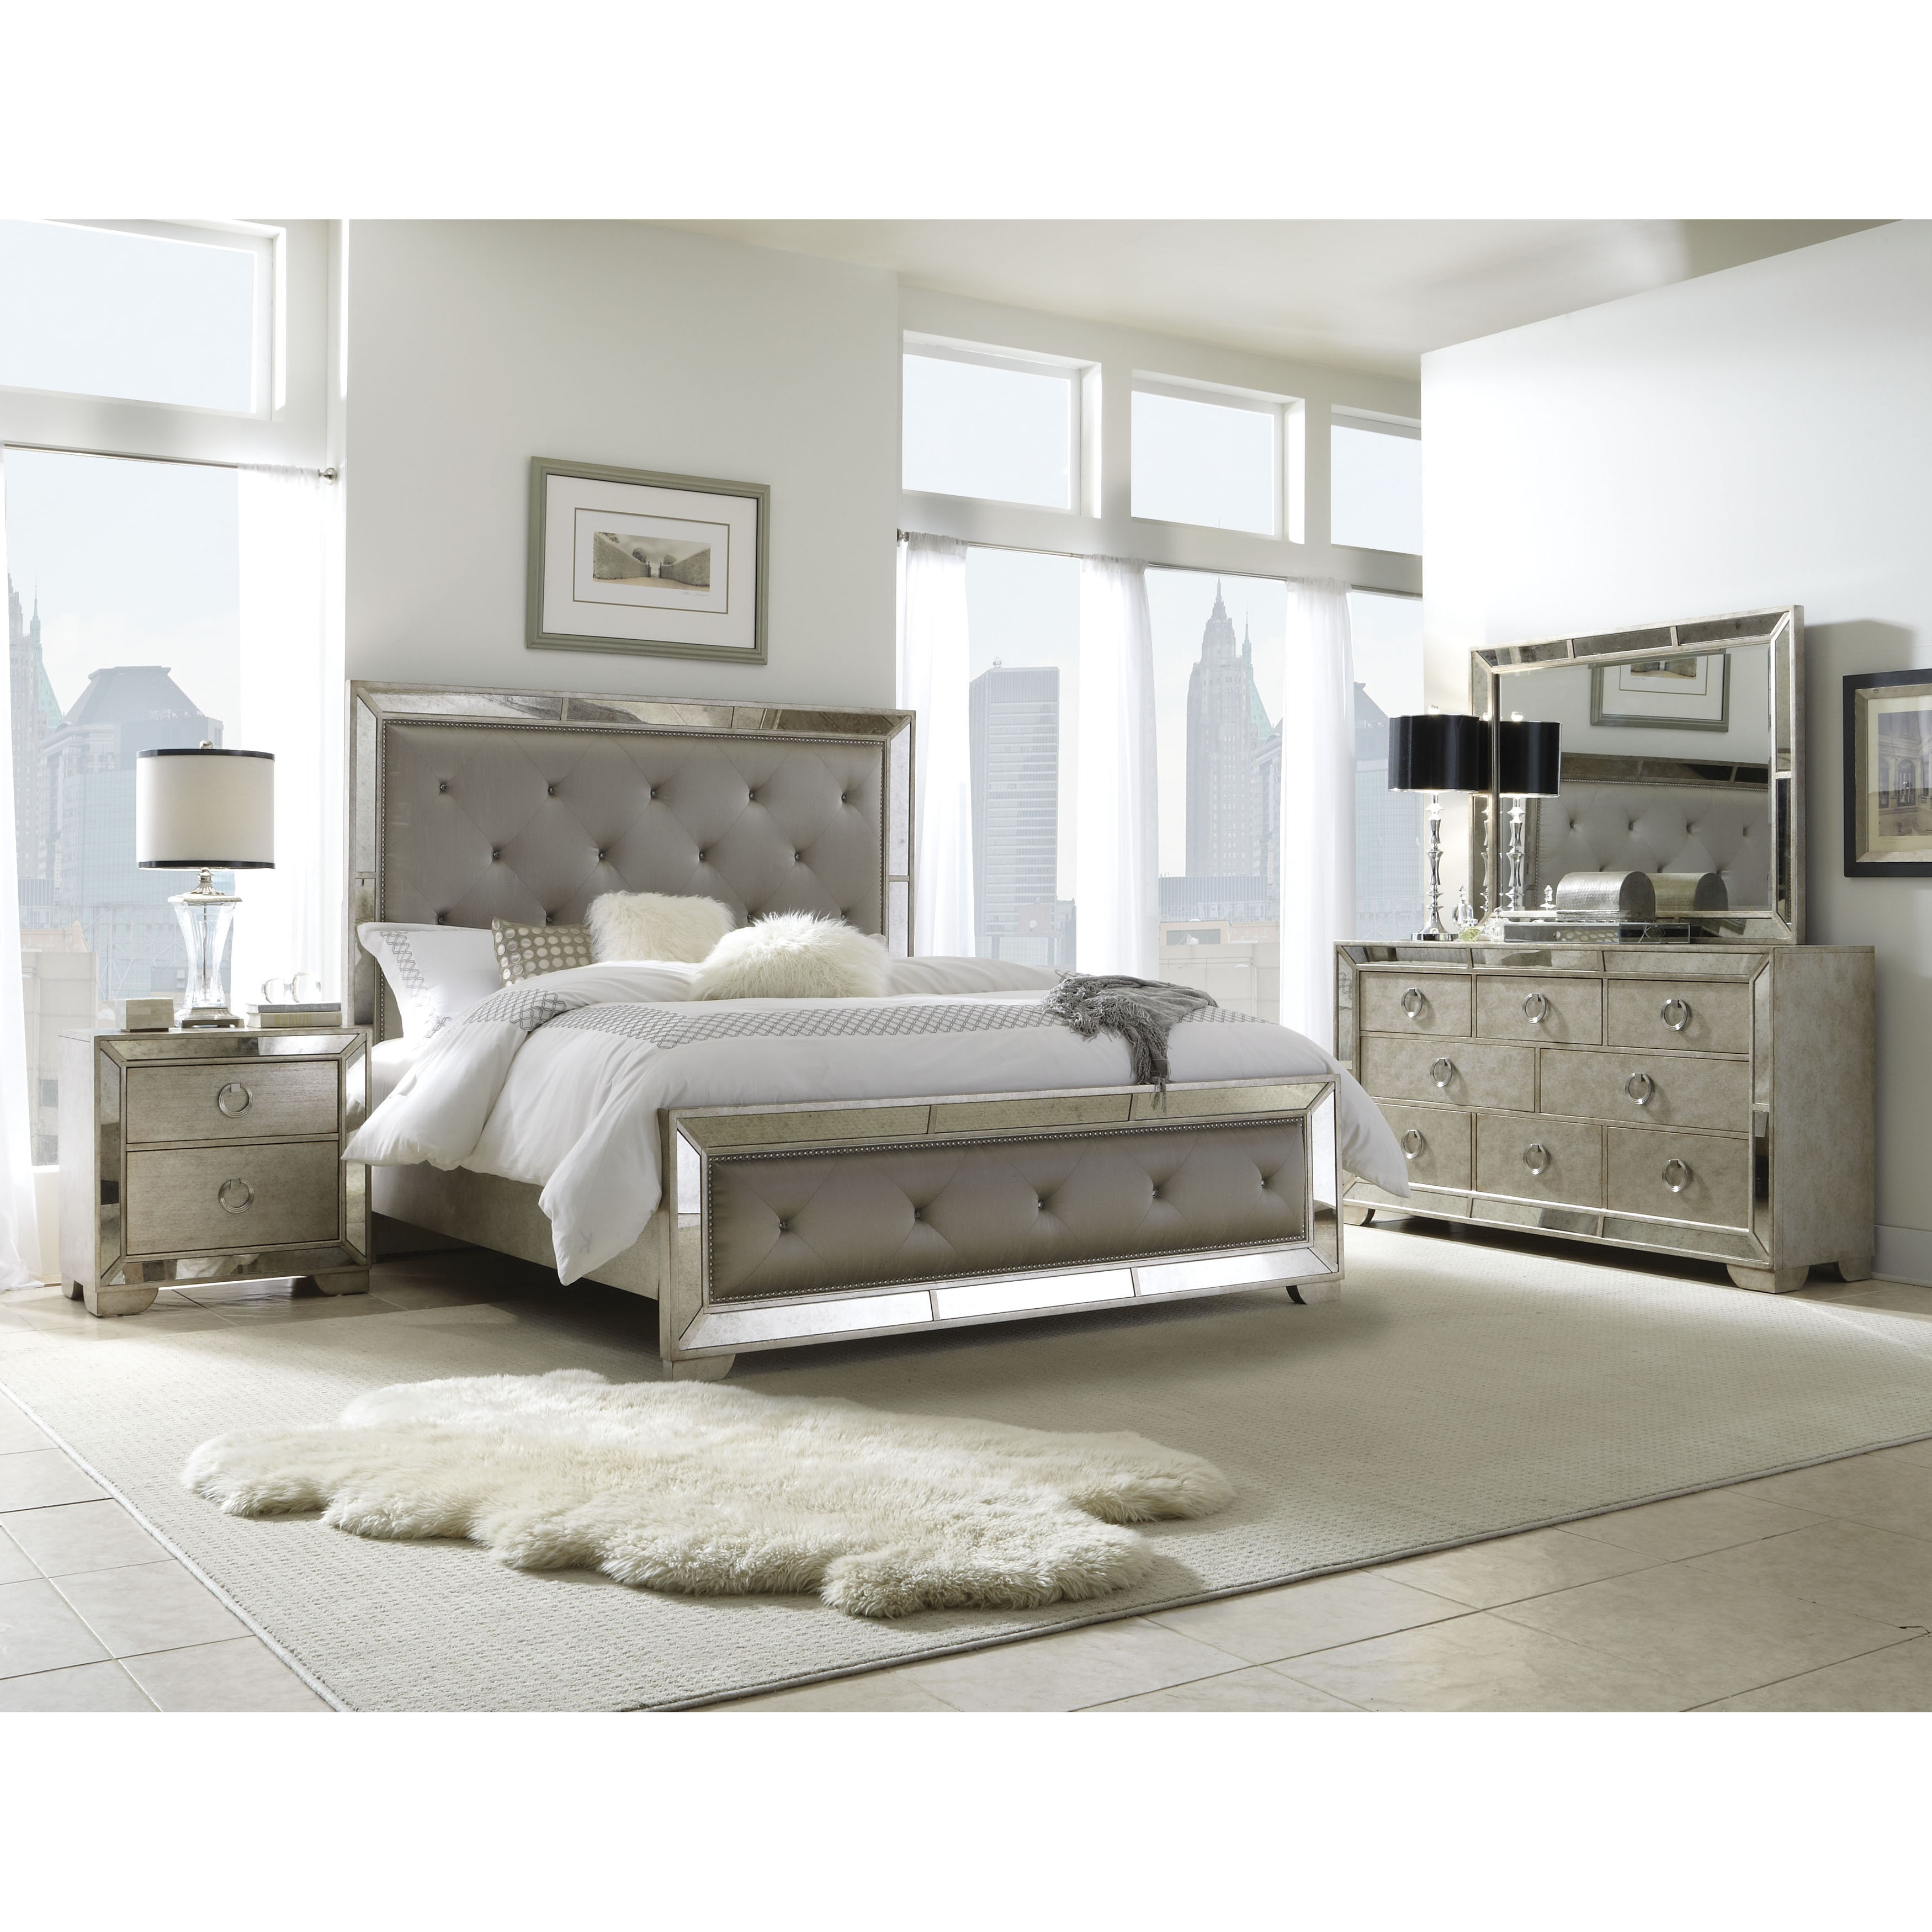 Celine 5 Piece Mirrored And Upholstered Tufted King Size Bedroom Set On Sale Overstock 8409731